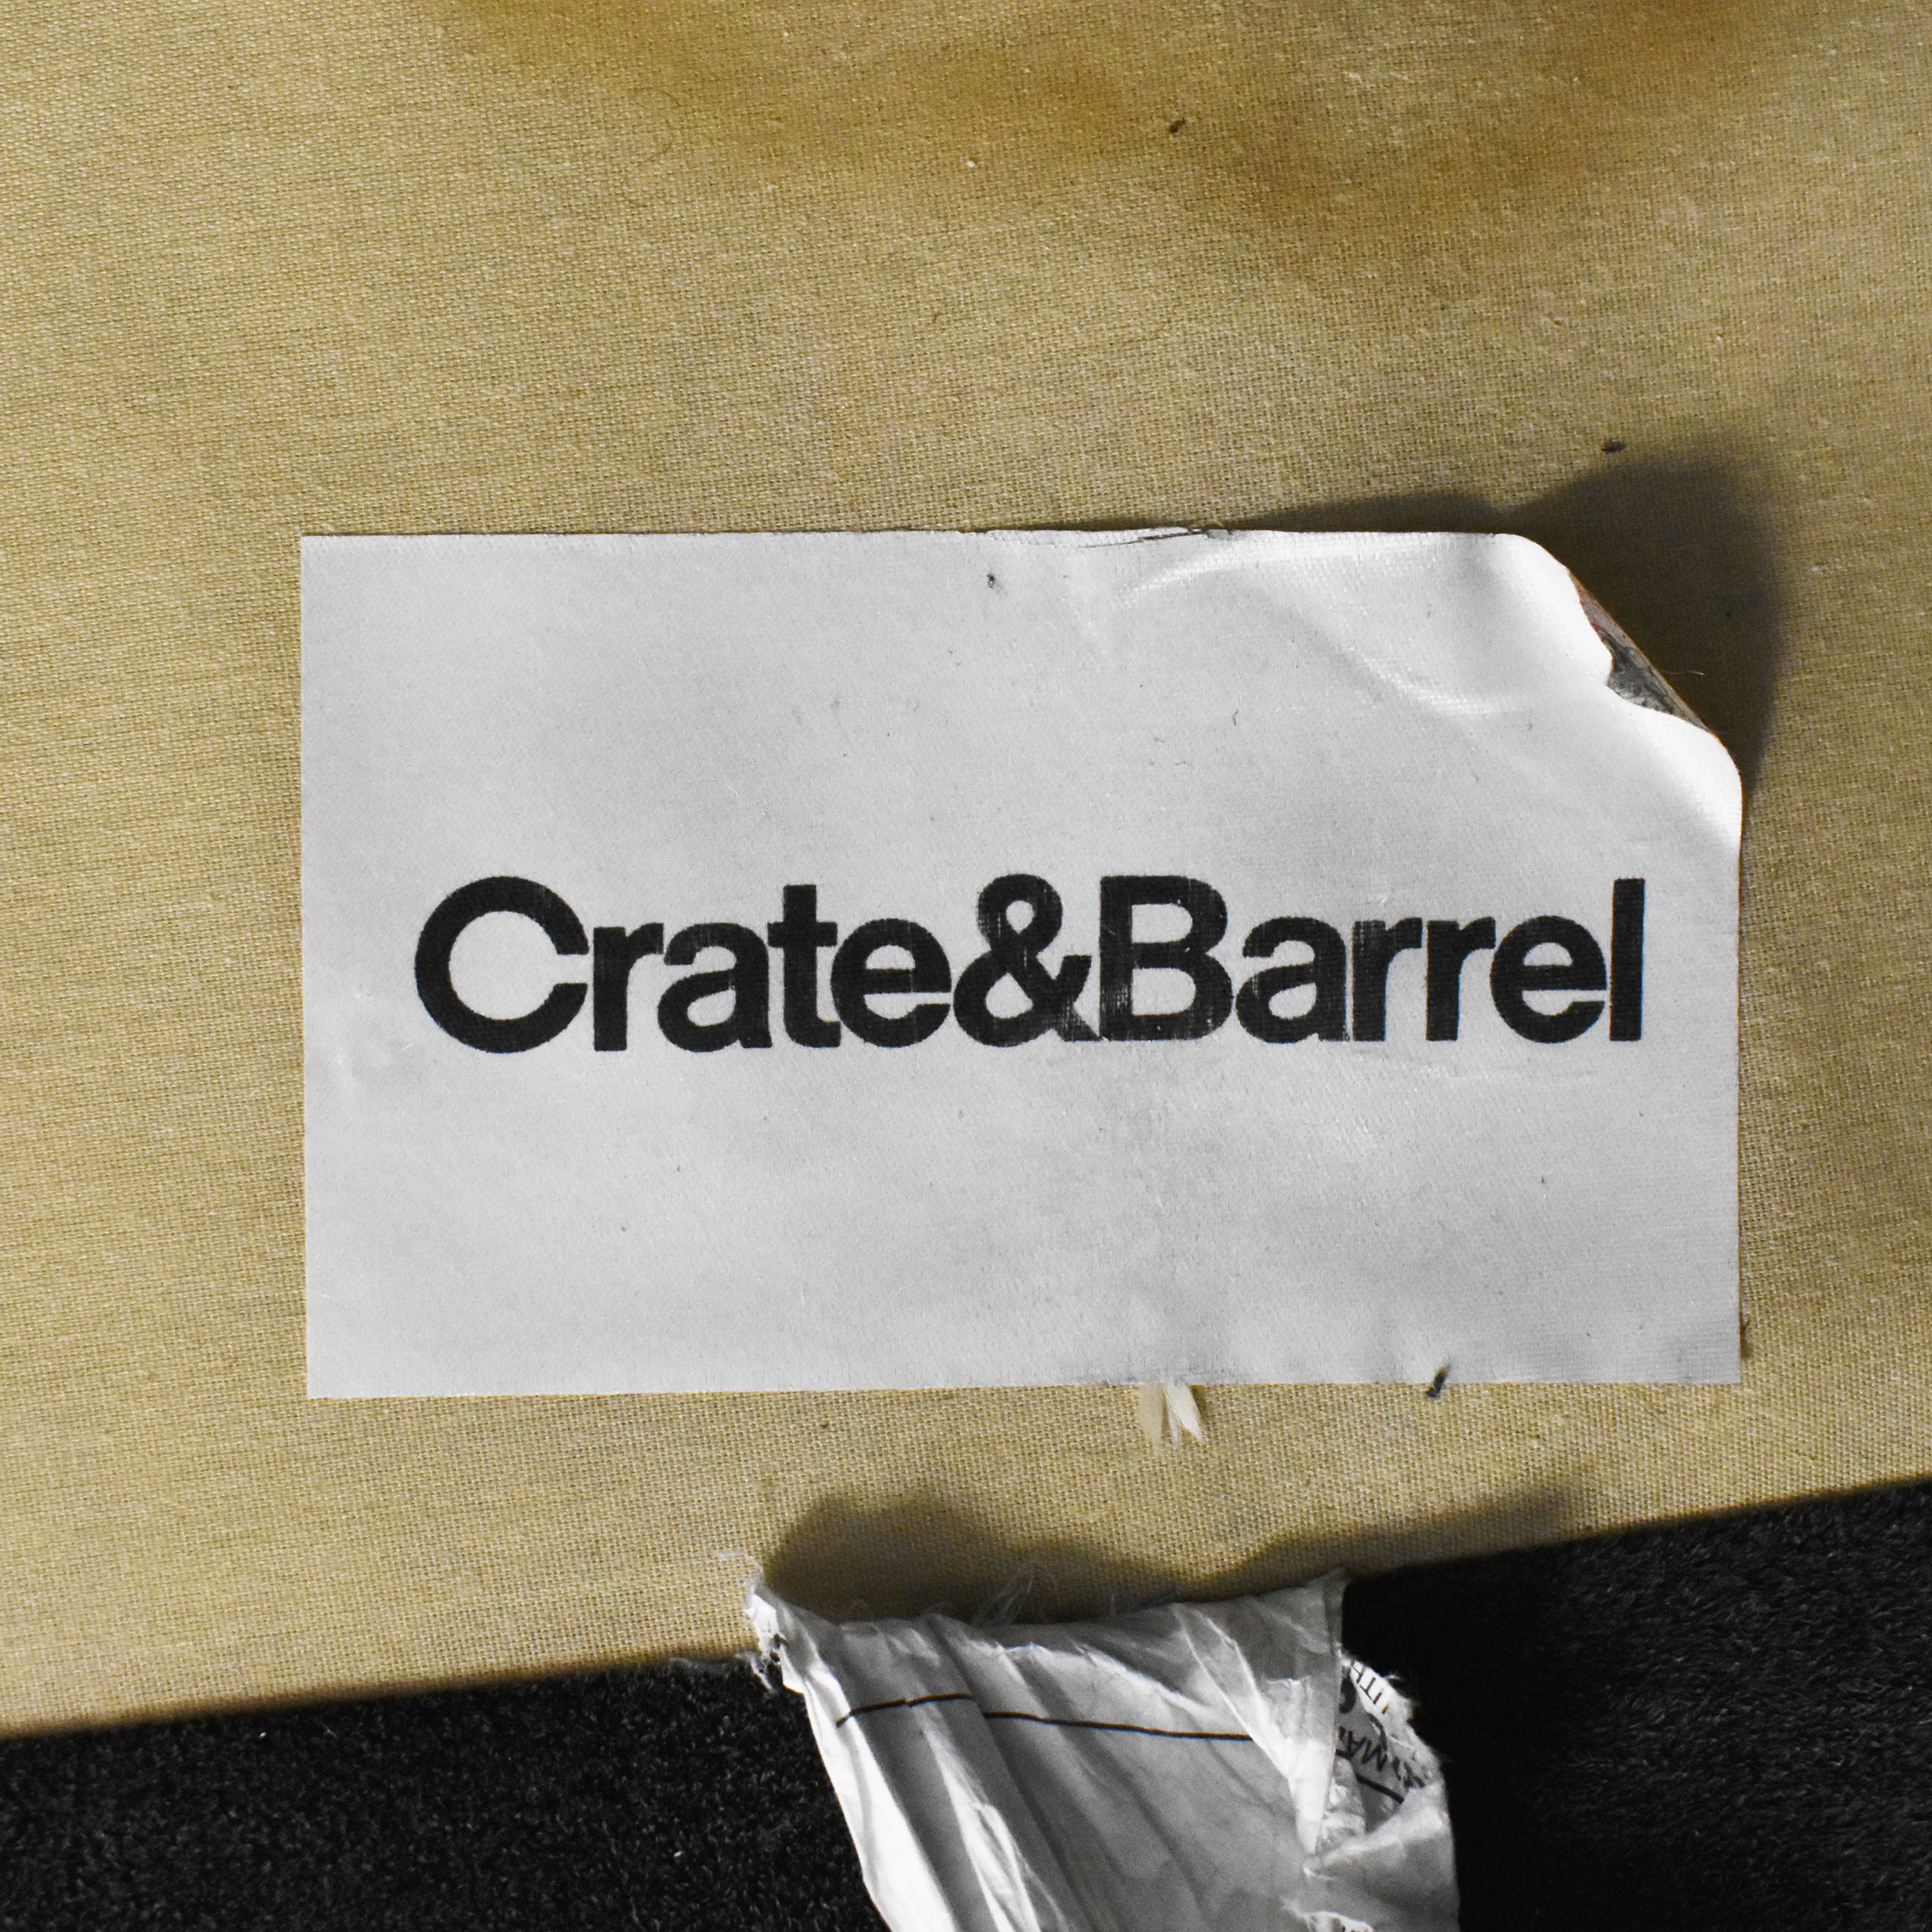 Crate & Barrel Crate & Barrel Axis II 2-Seat Sofa ma